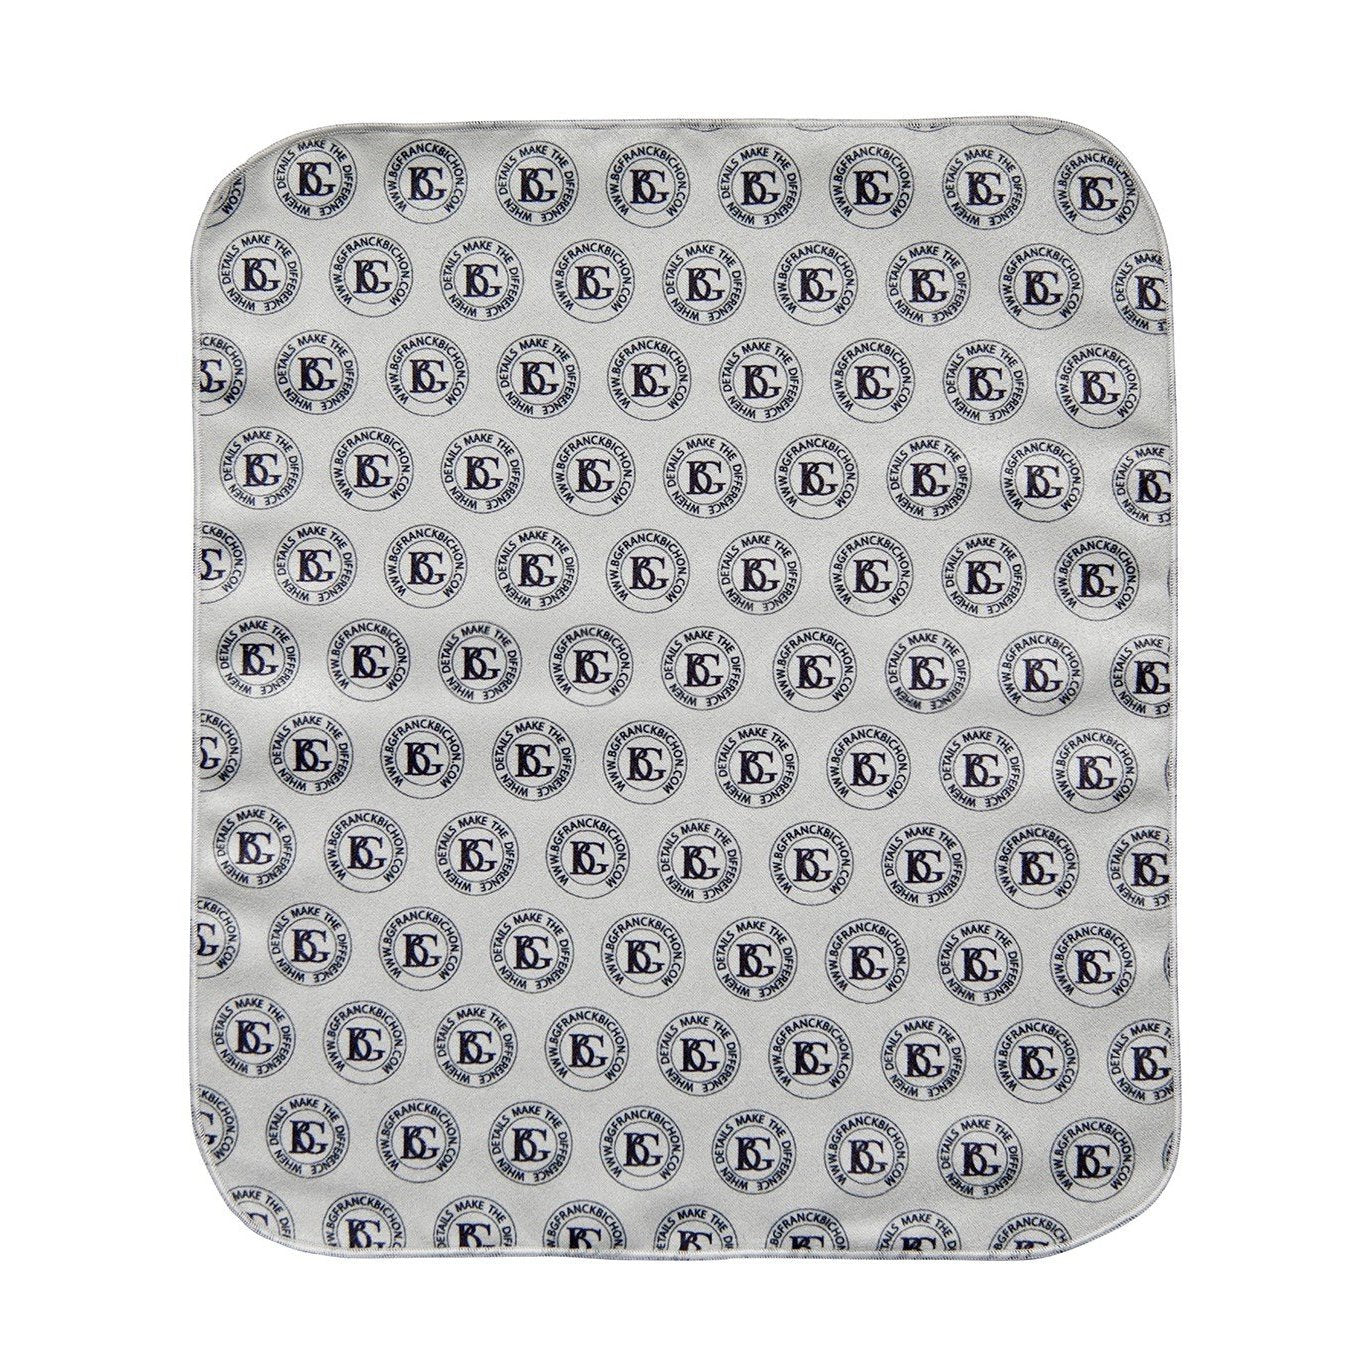 BG France - Microfiber Care Cloths-Accessories-BG France-Regular (25 x 29 cm)-Music Elements